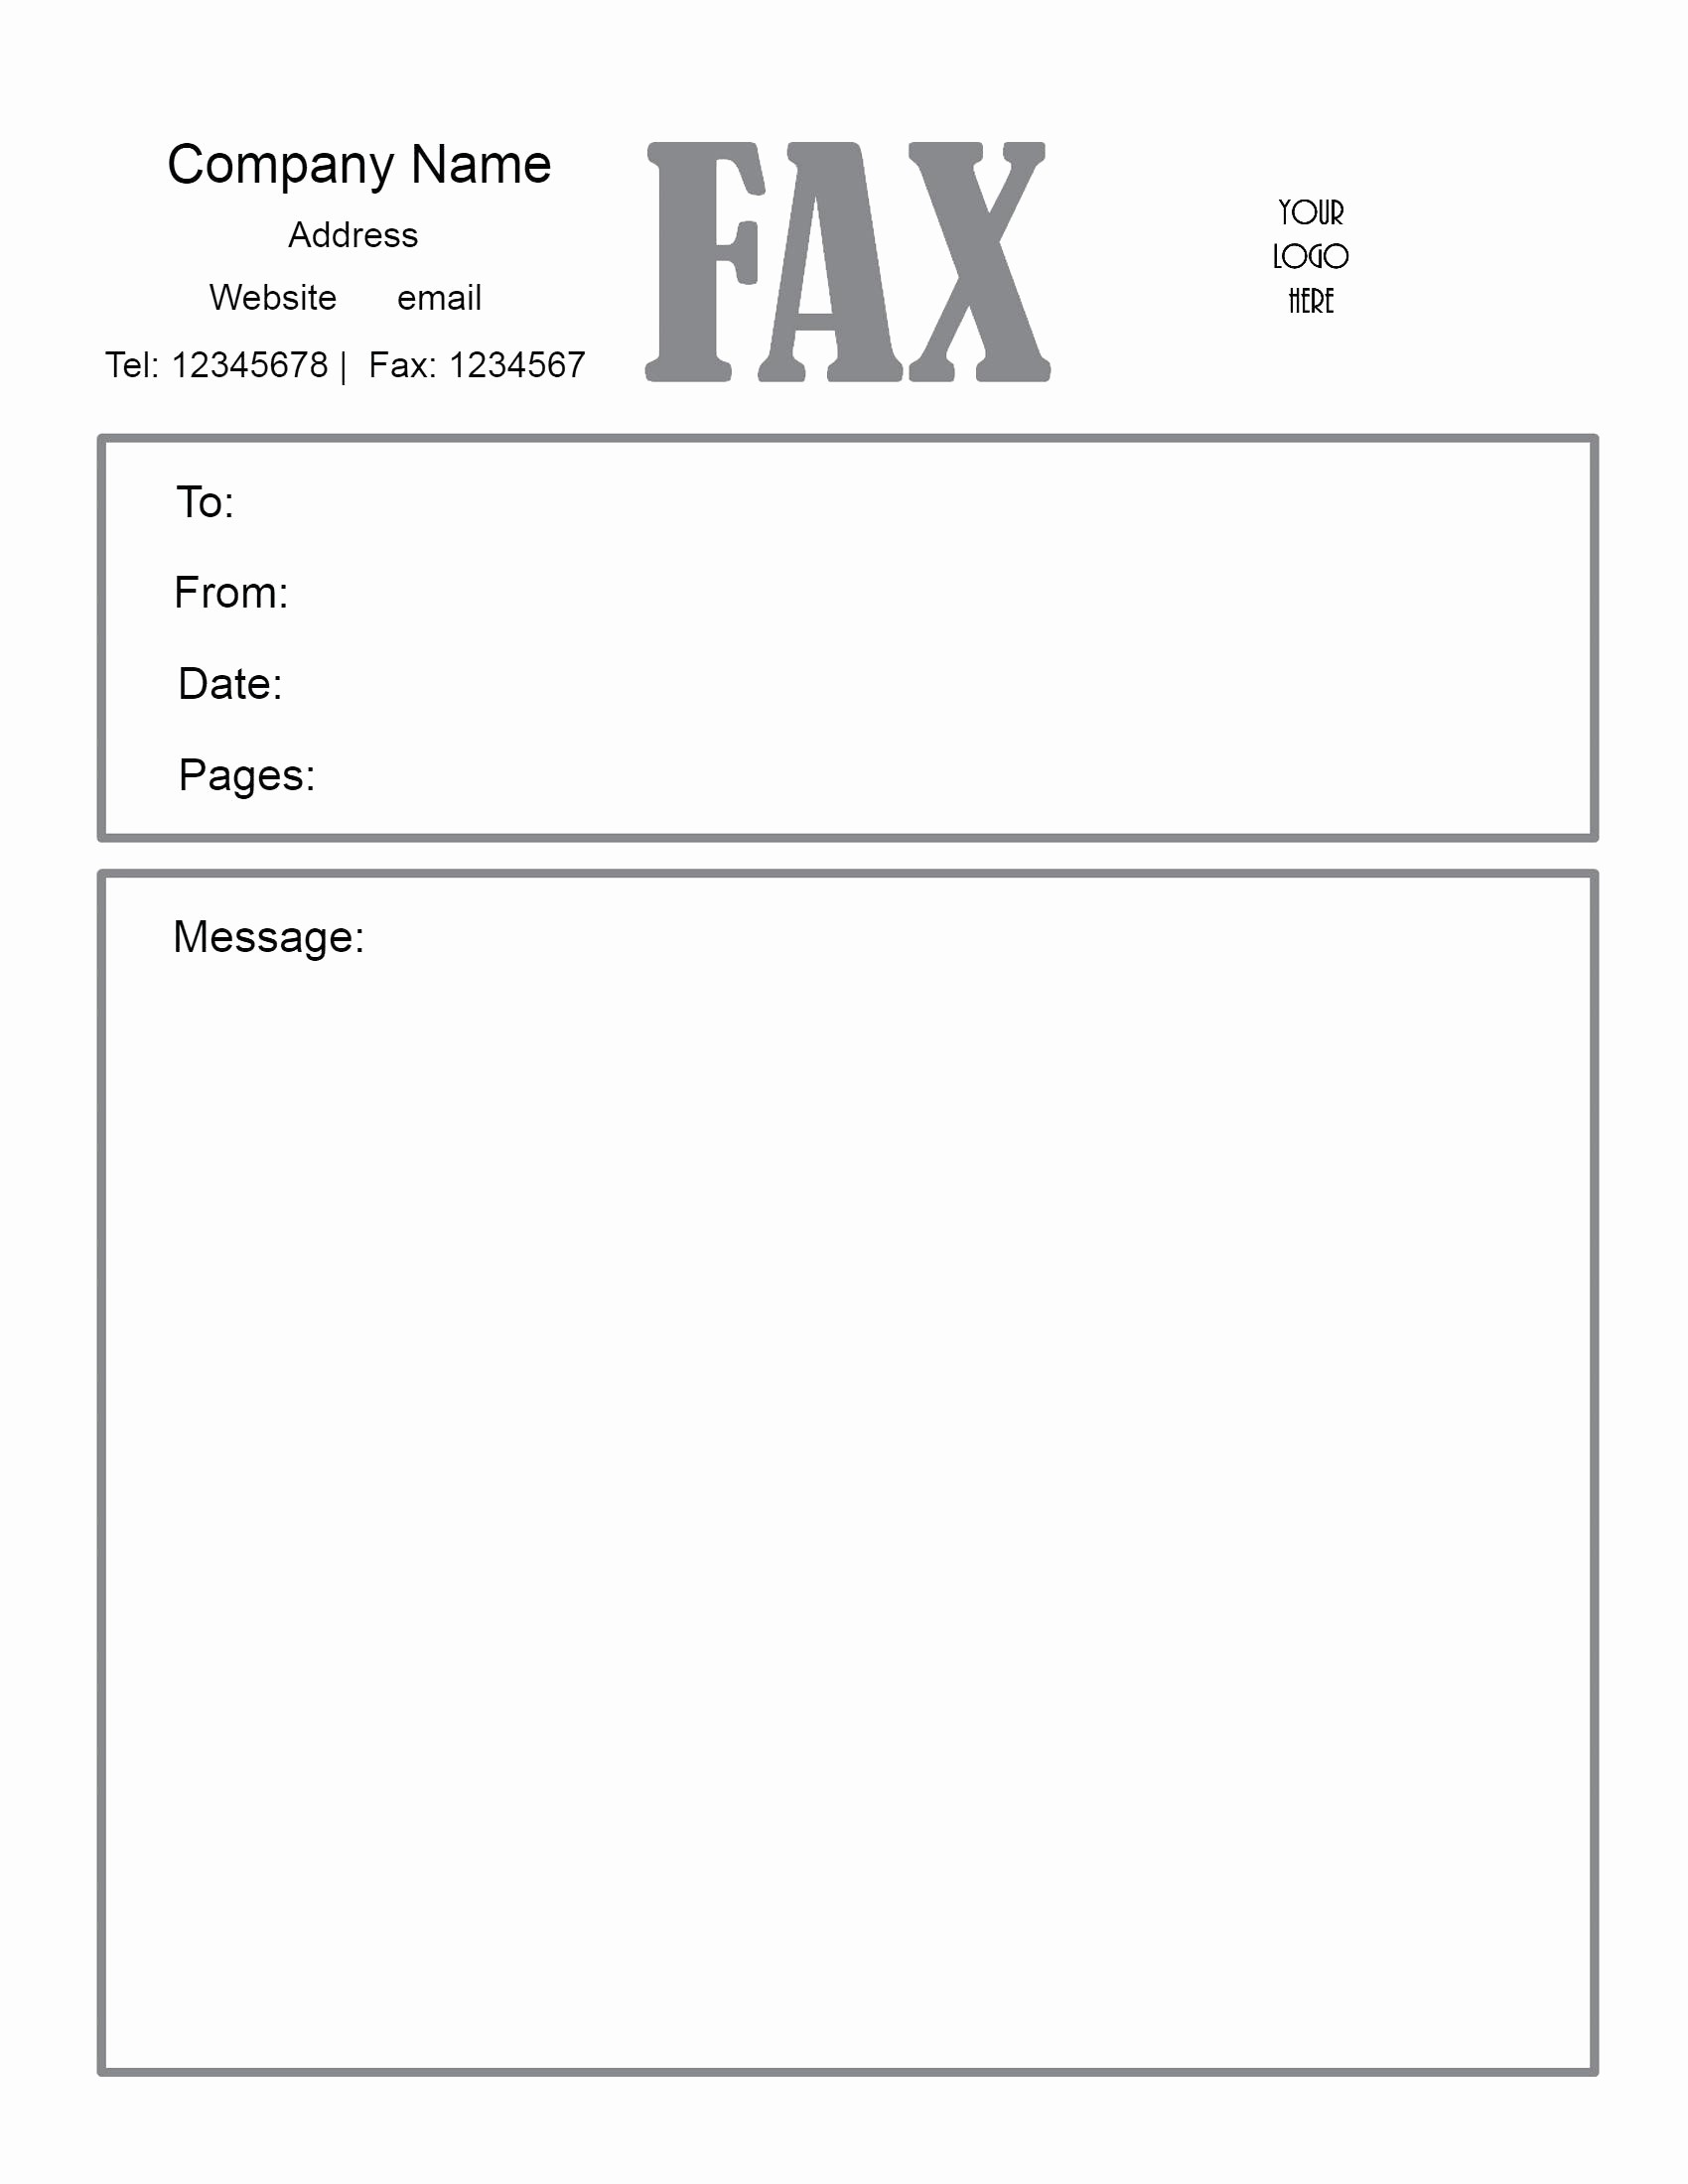 Fax Cover Sheet Pdf Free Inspirational Fax Cover Sheet Pdf Free Download